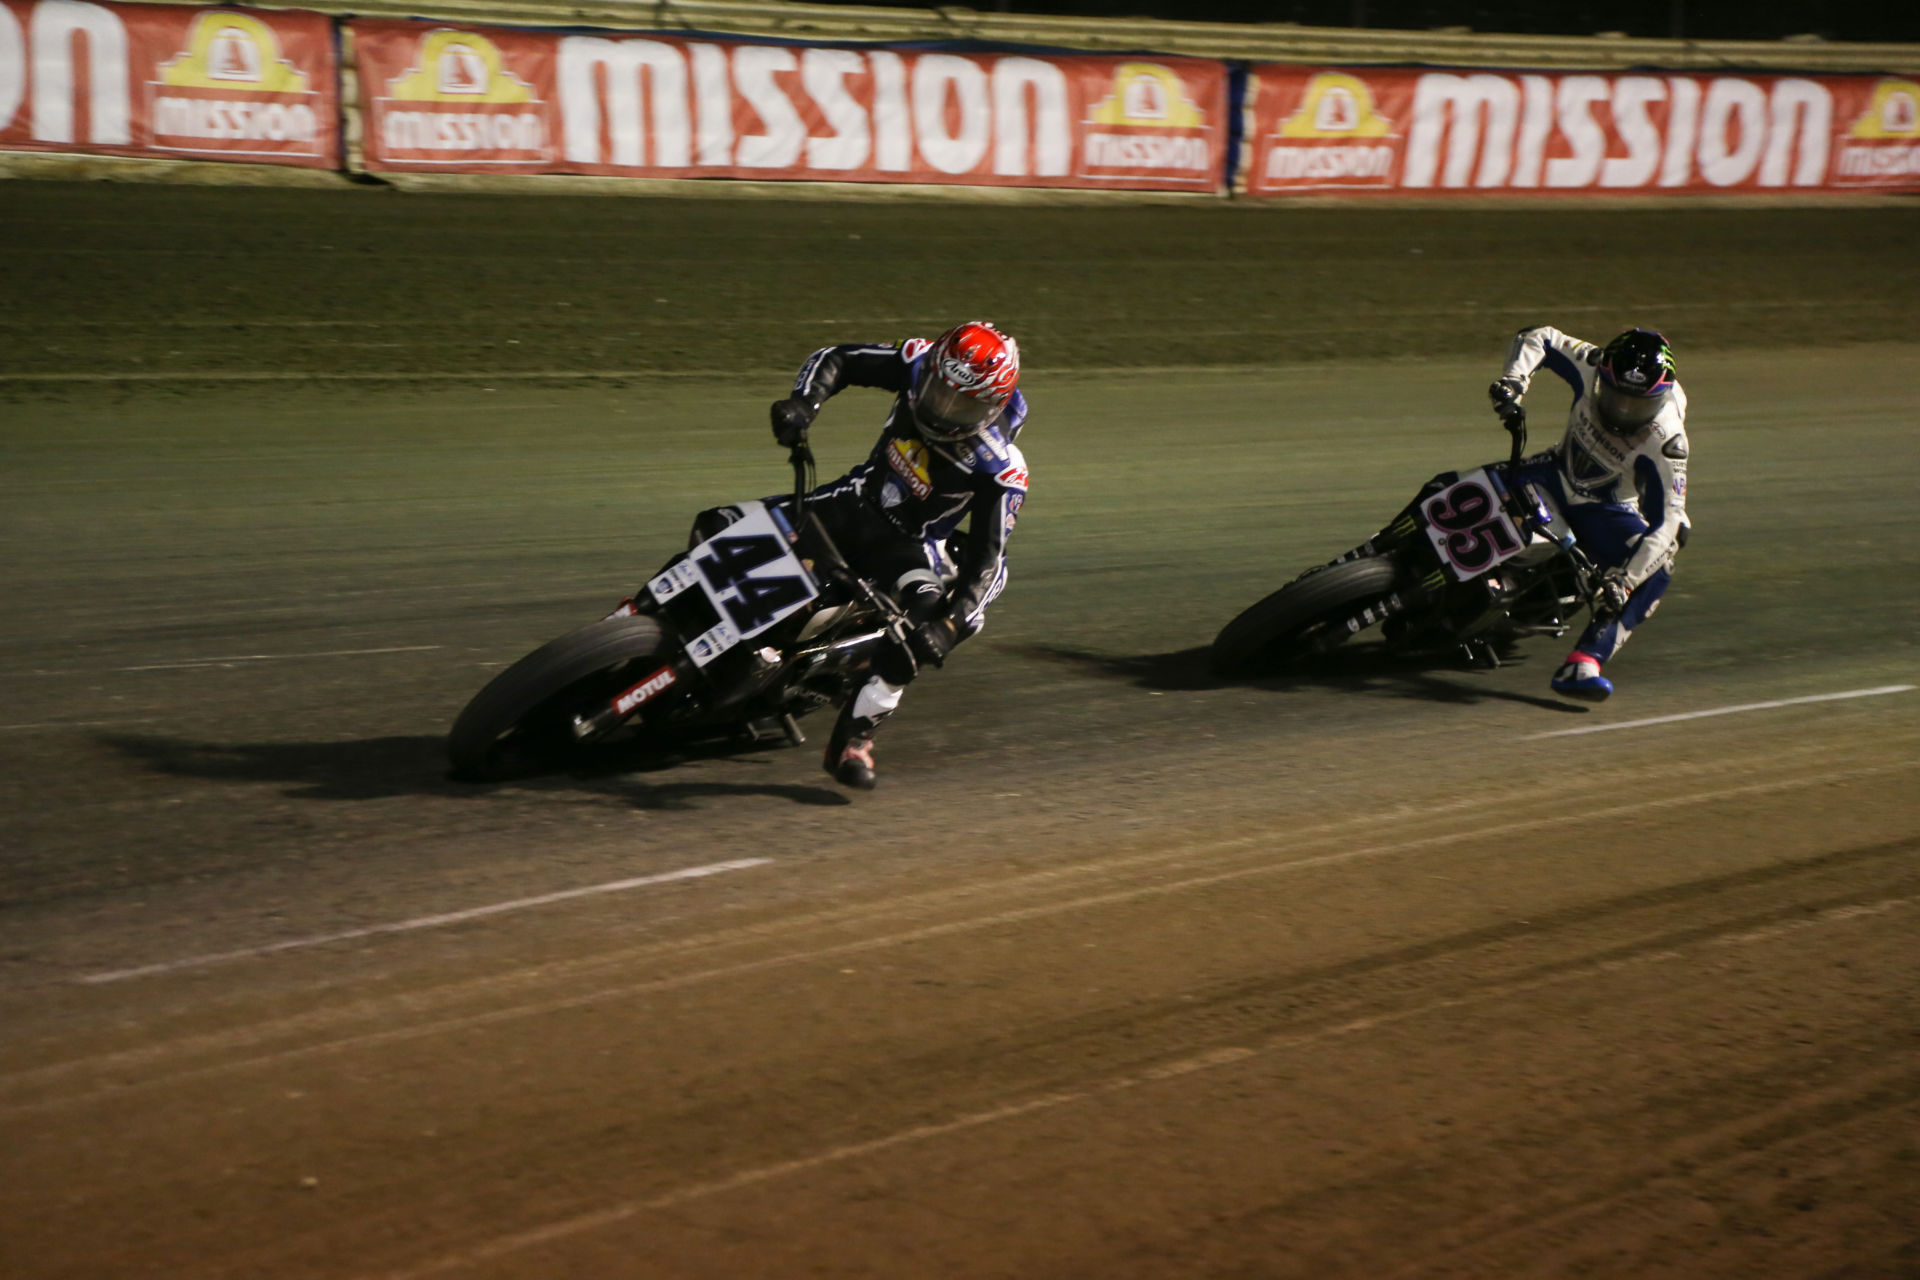 Brandon Robinson (44) and JD Beach (95) during the AFT Mission SuperTwins main event at the Volusia Half-Mile I. Photo by Scott Hunter, courtesy AFT.